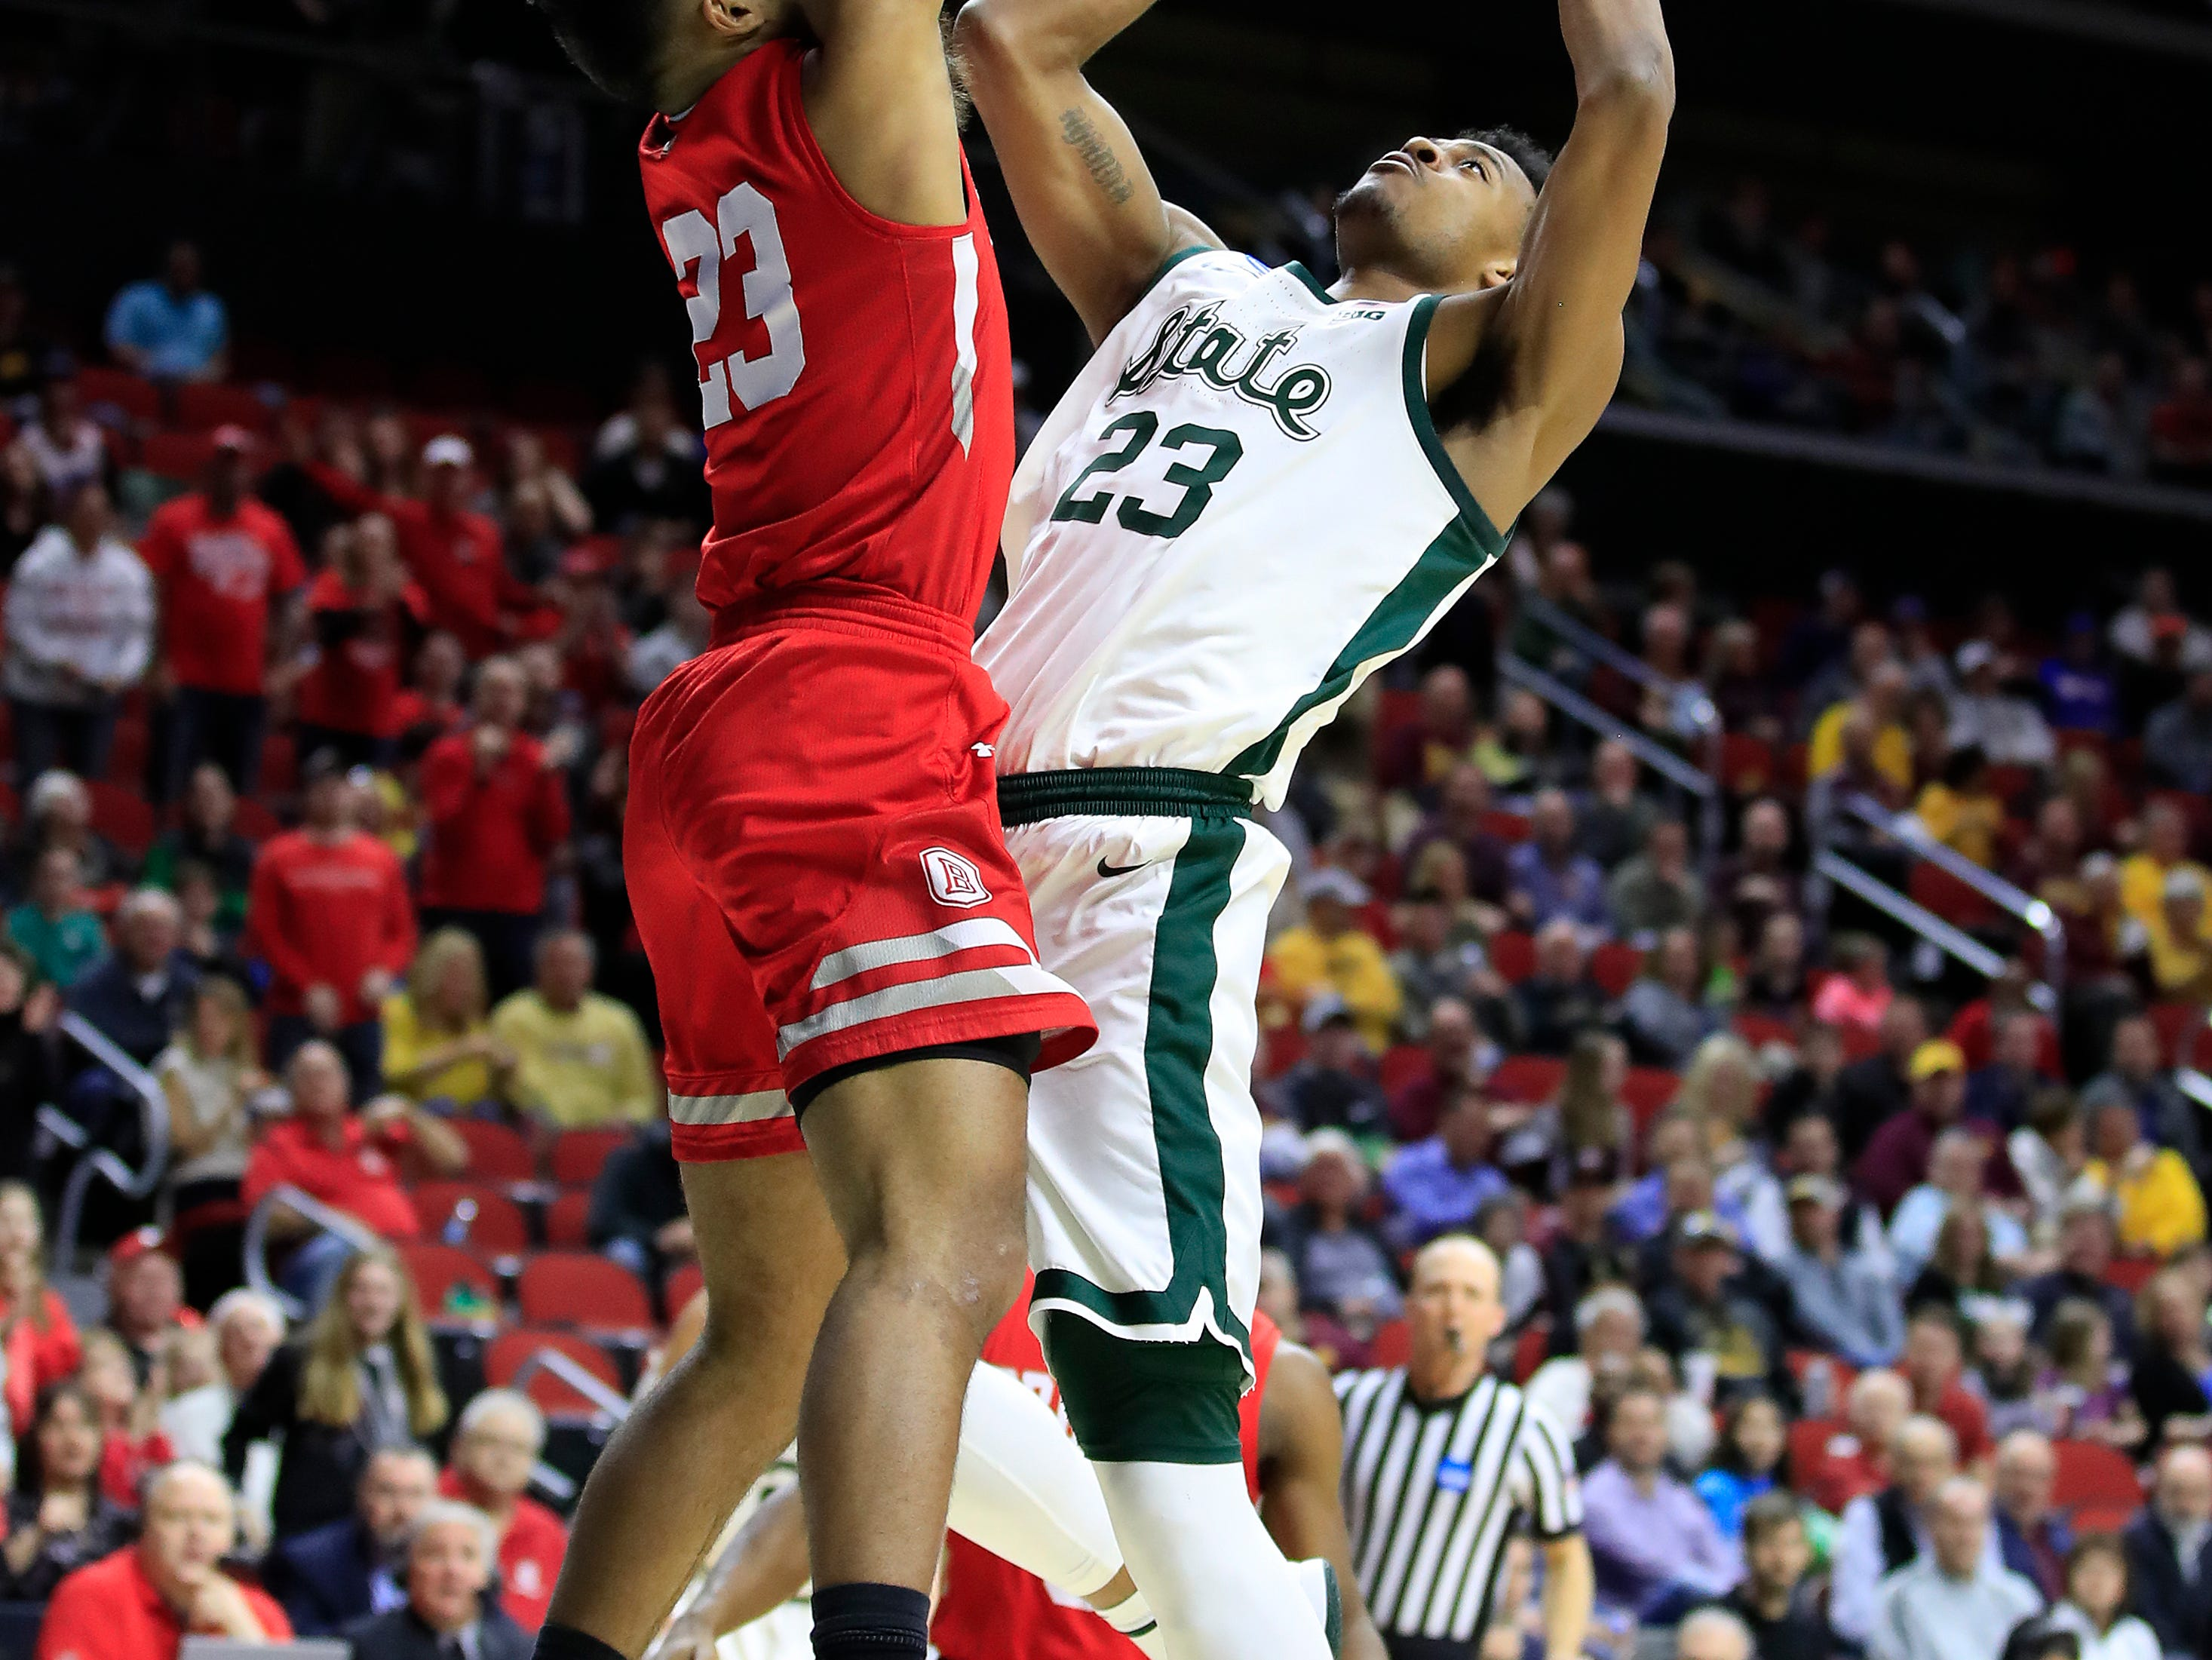 Xavier Tillman #23 of the Michigan State Spartans goes up for a shot against the Bradley Braves during their game in the First Round of the NCAA Basketball Tournament at Wells Fargo Arena on March 21, 2019 in Des Moines, Iowa.